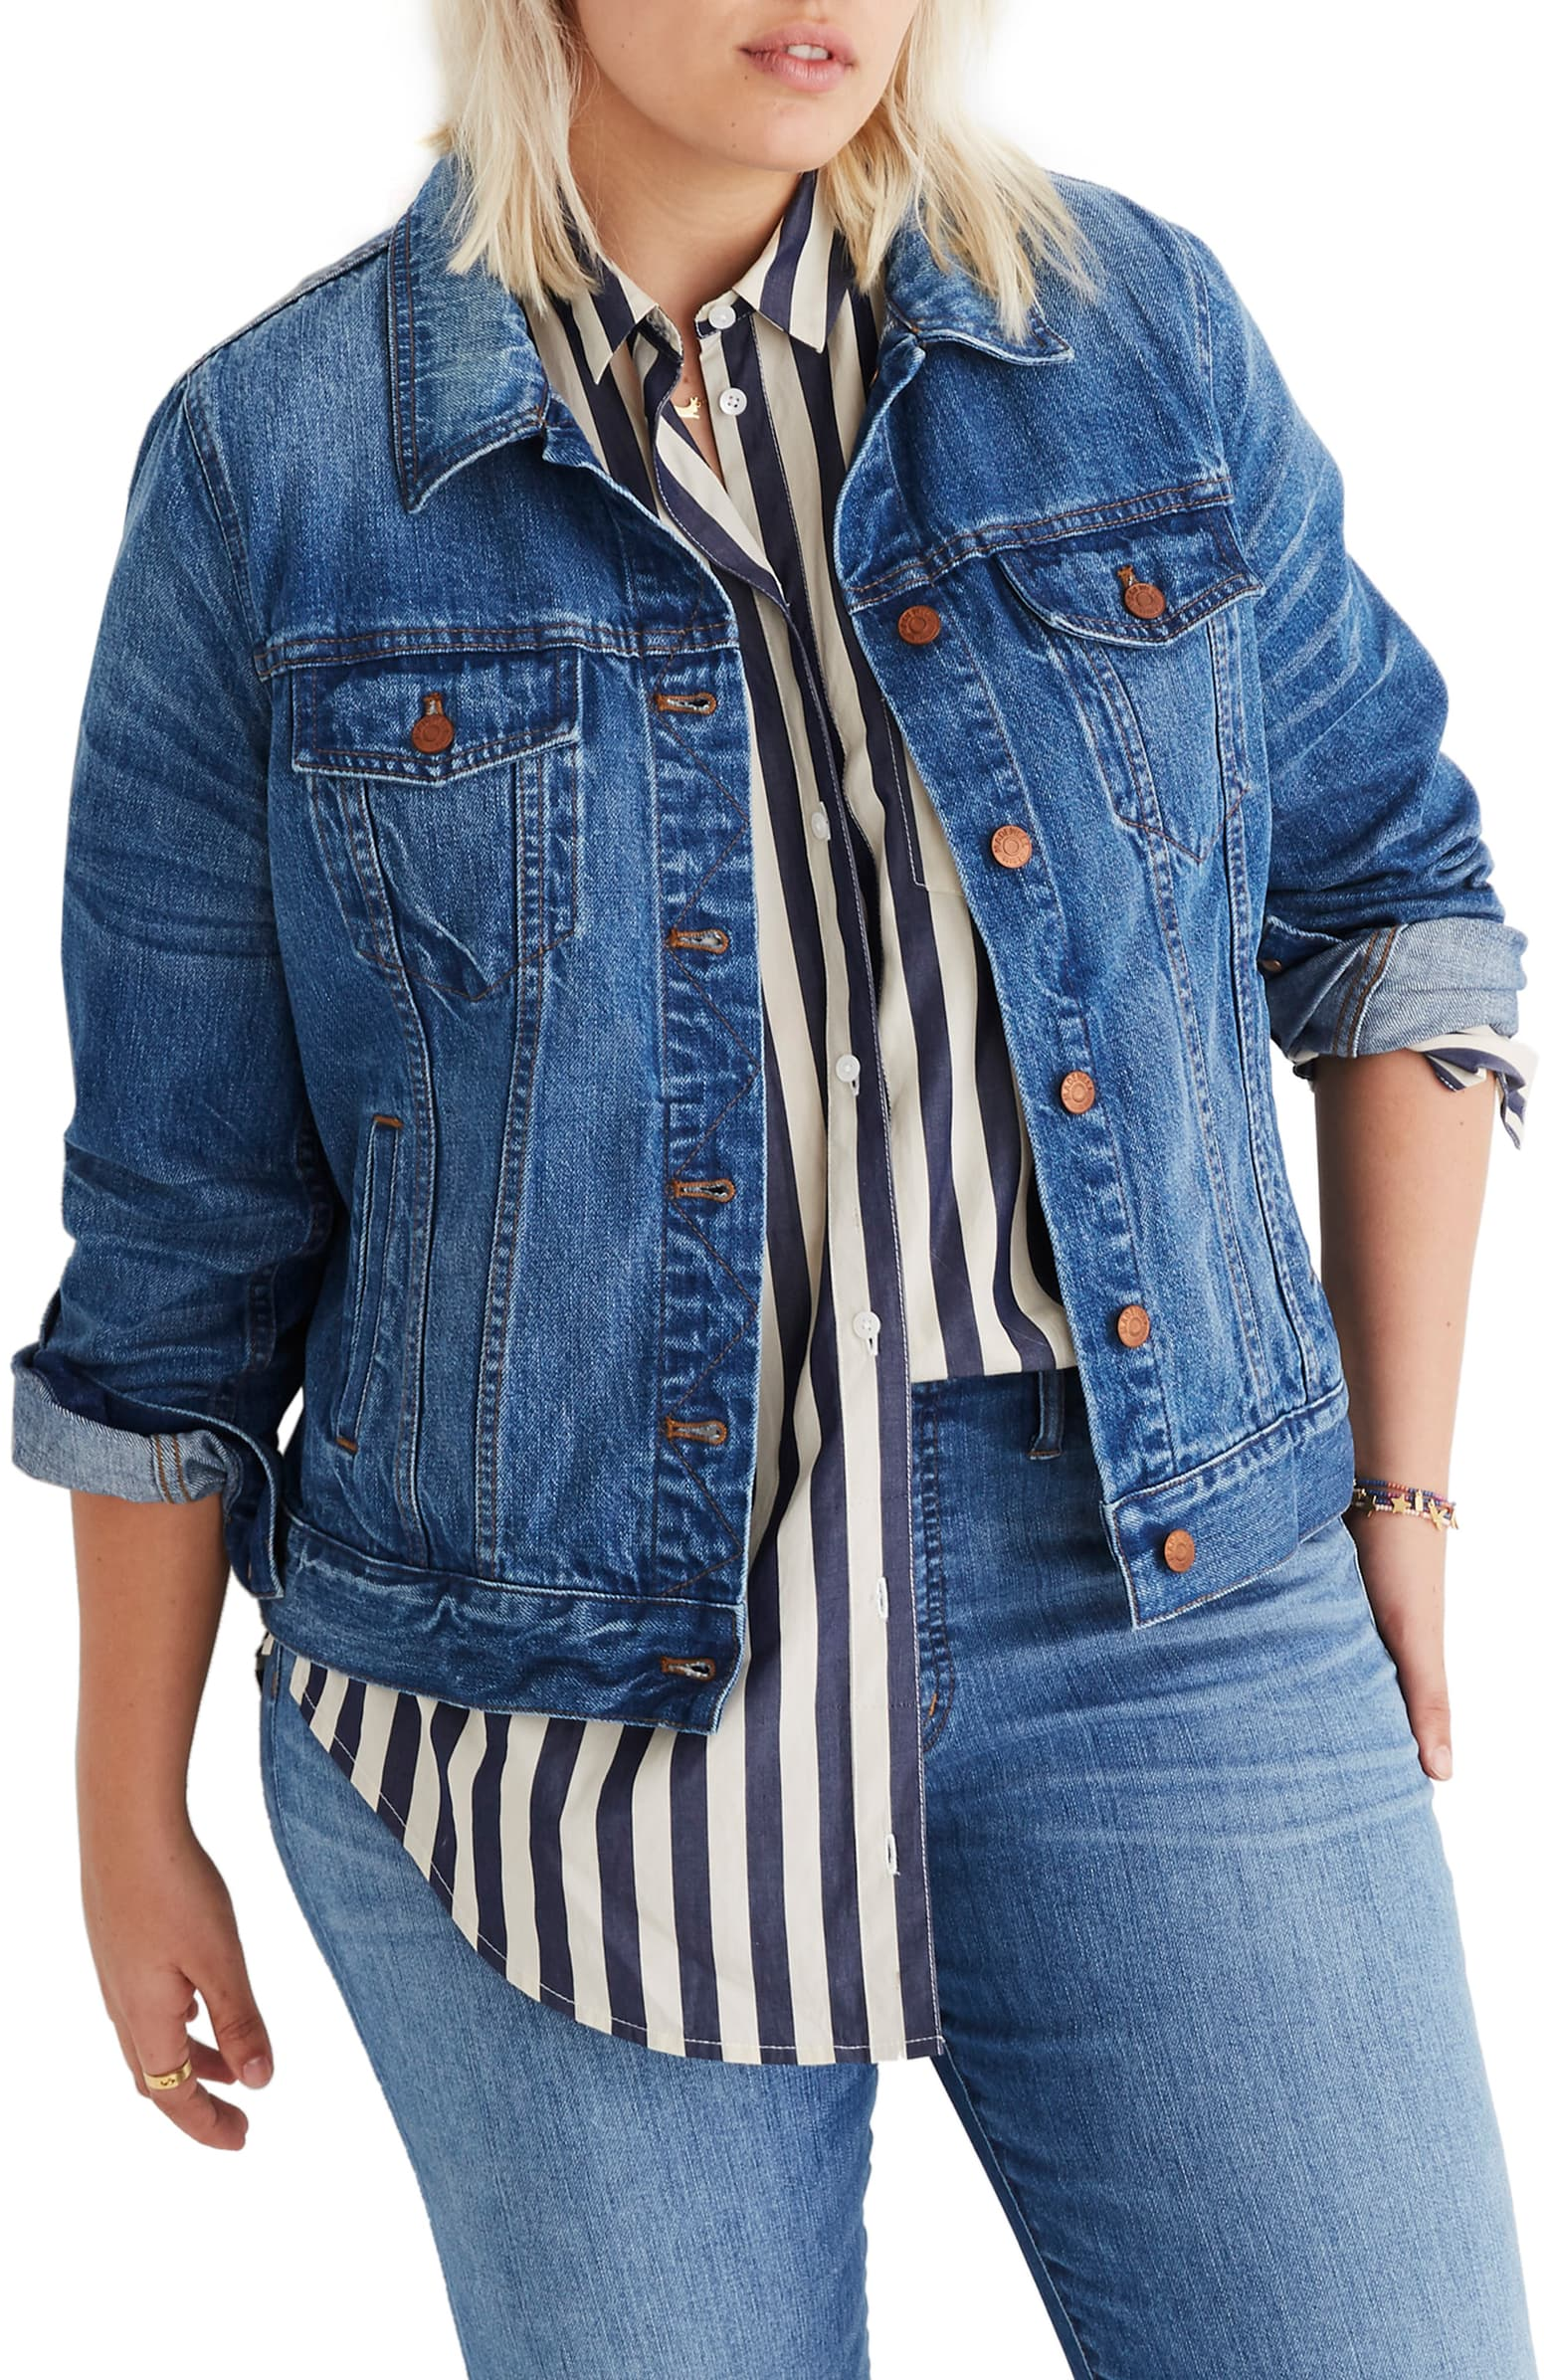 madewell denim jacket